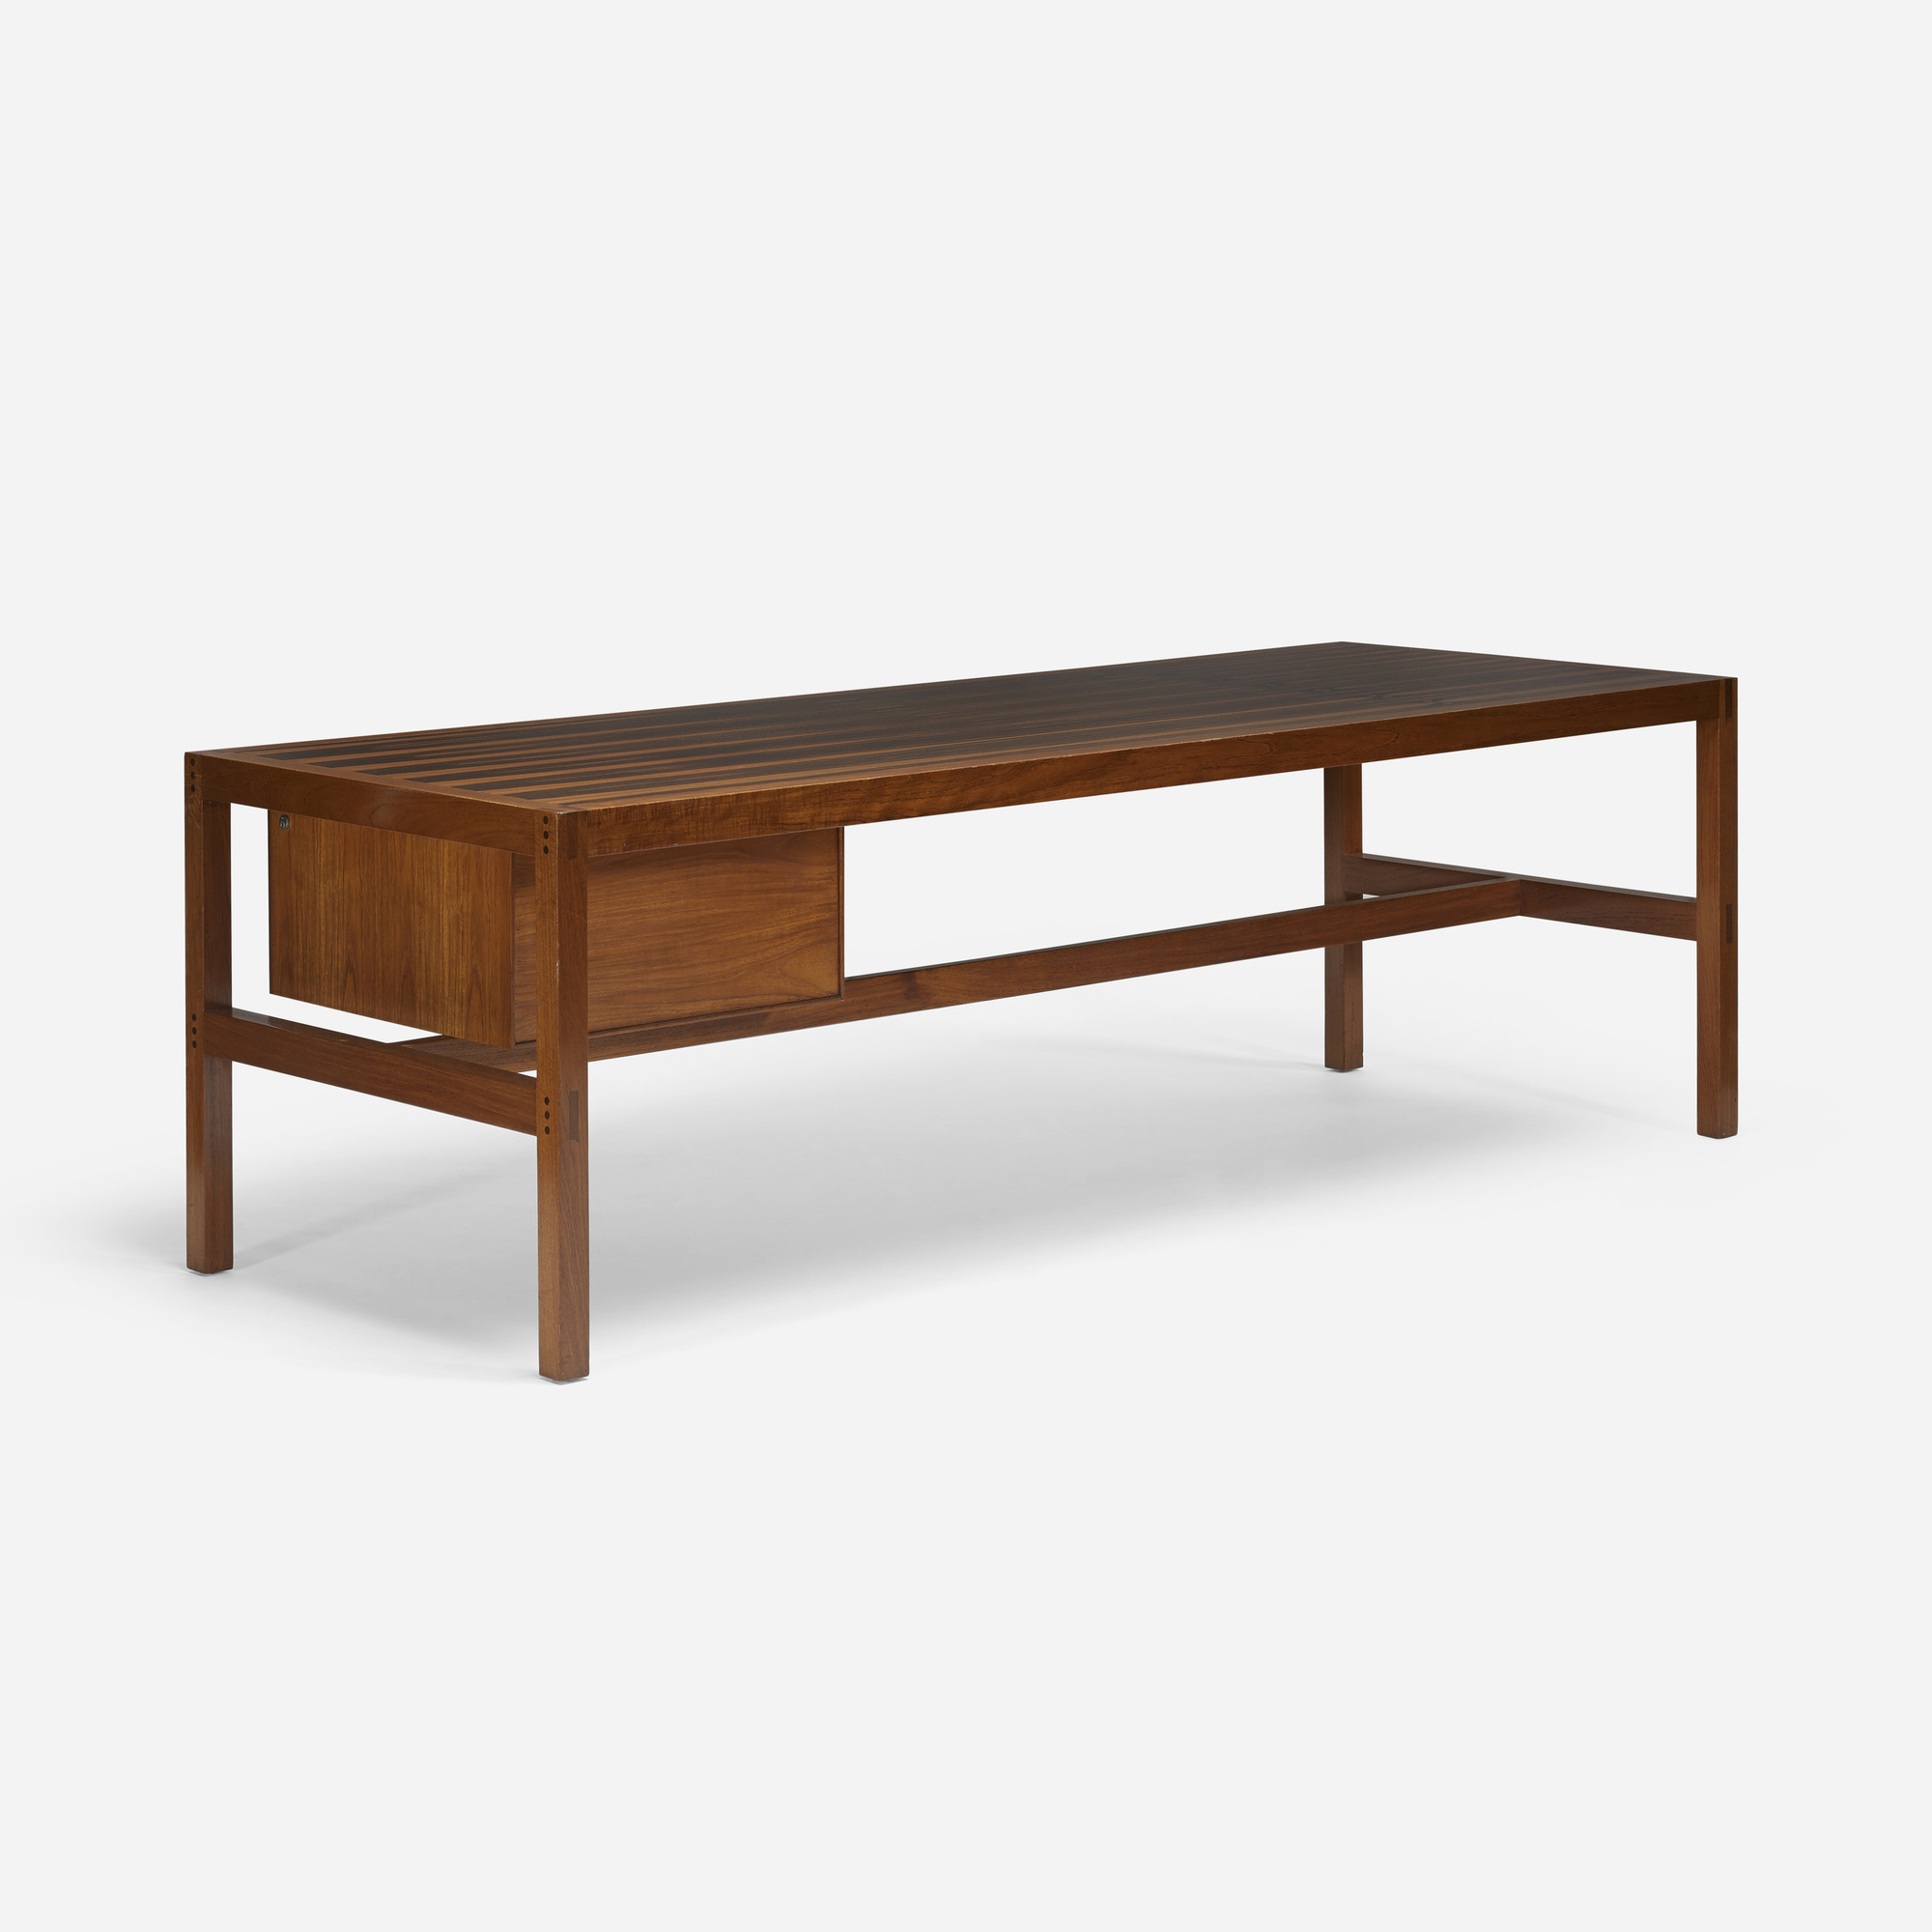 cupboard and michael design wright furniture davis february lab art robert of langlois auctions auction meth